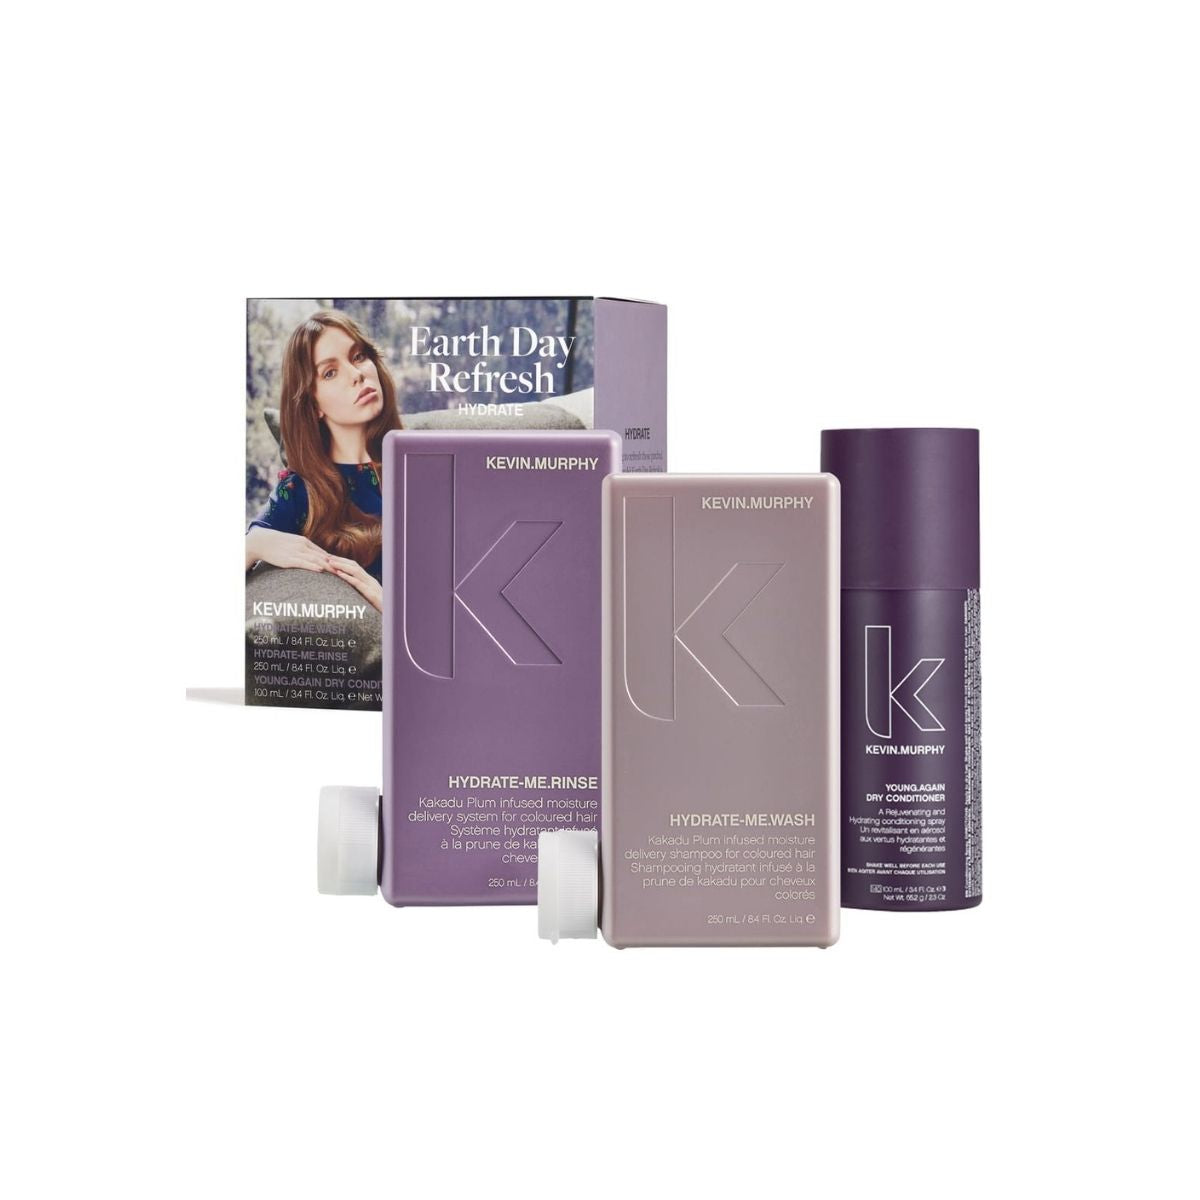 Kevin Murphy Earth Day Refresh Hydrate Bundle